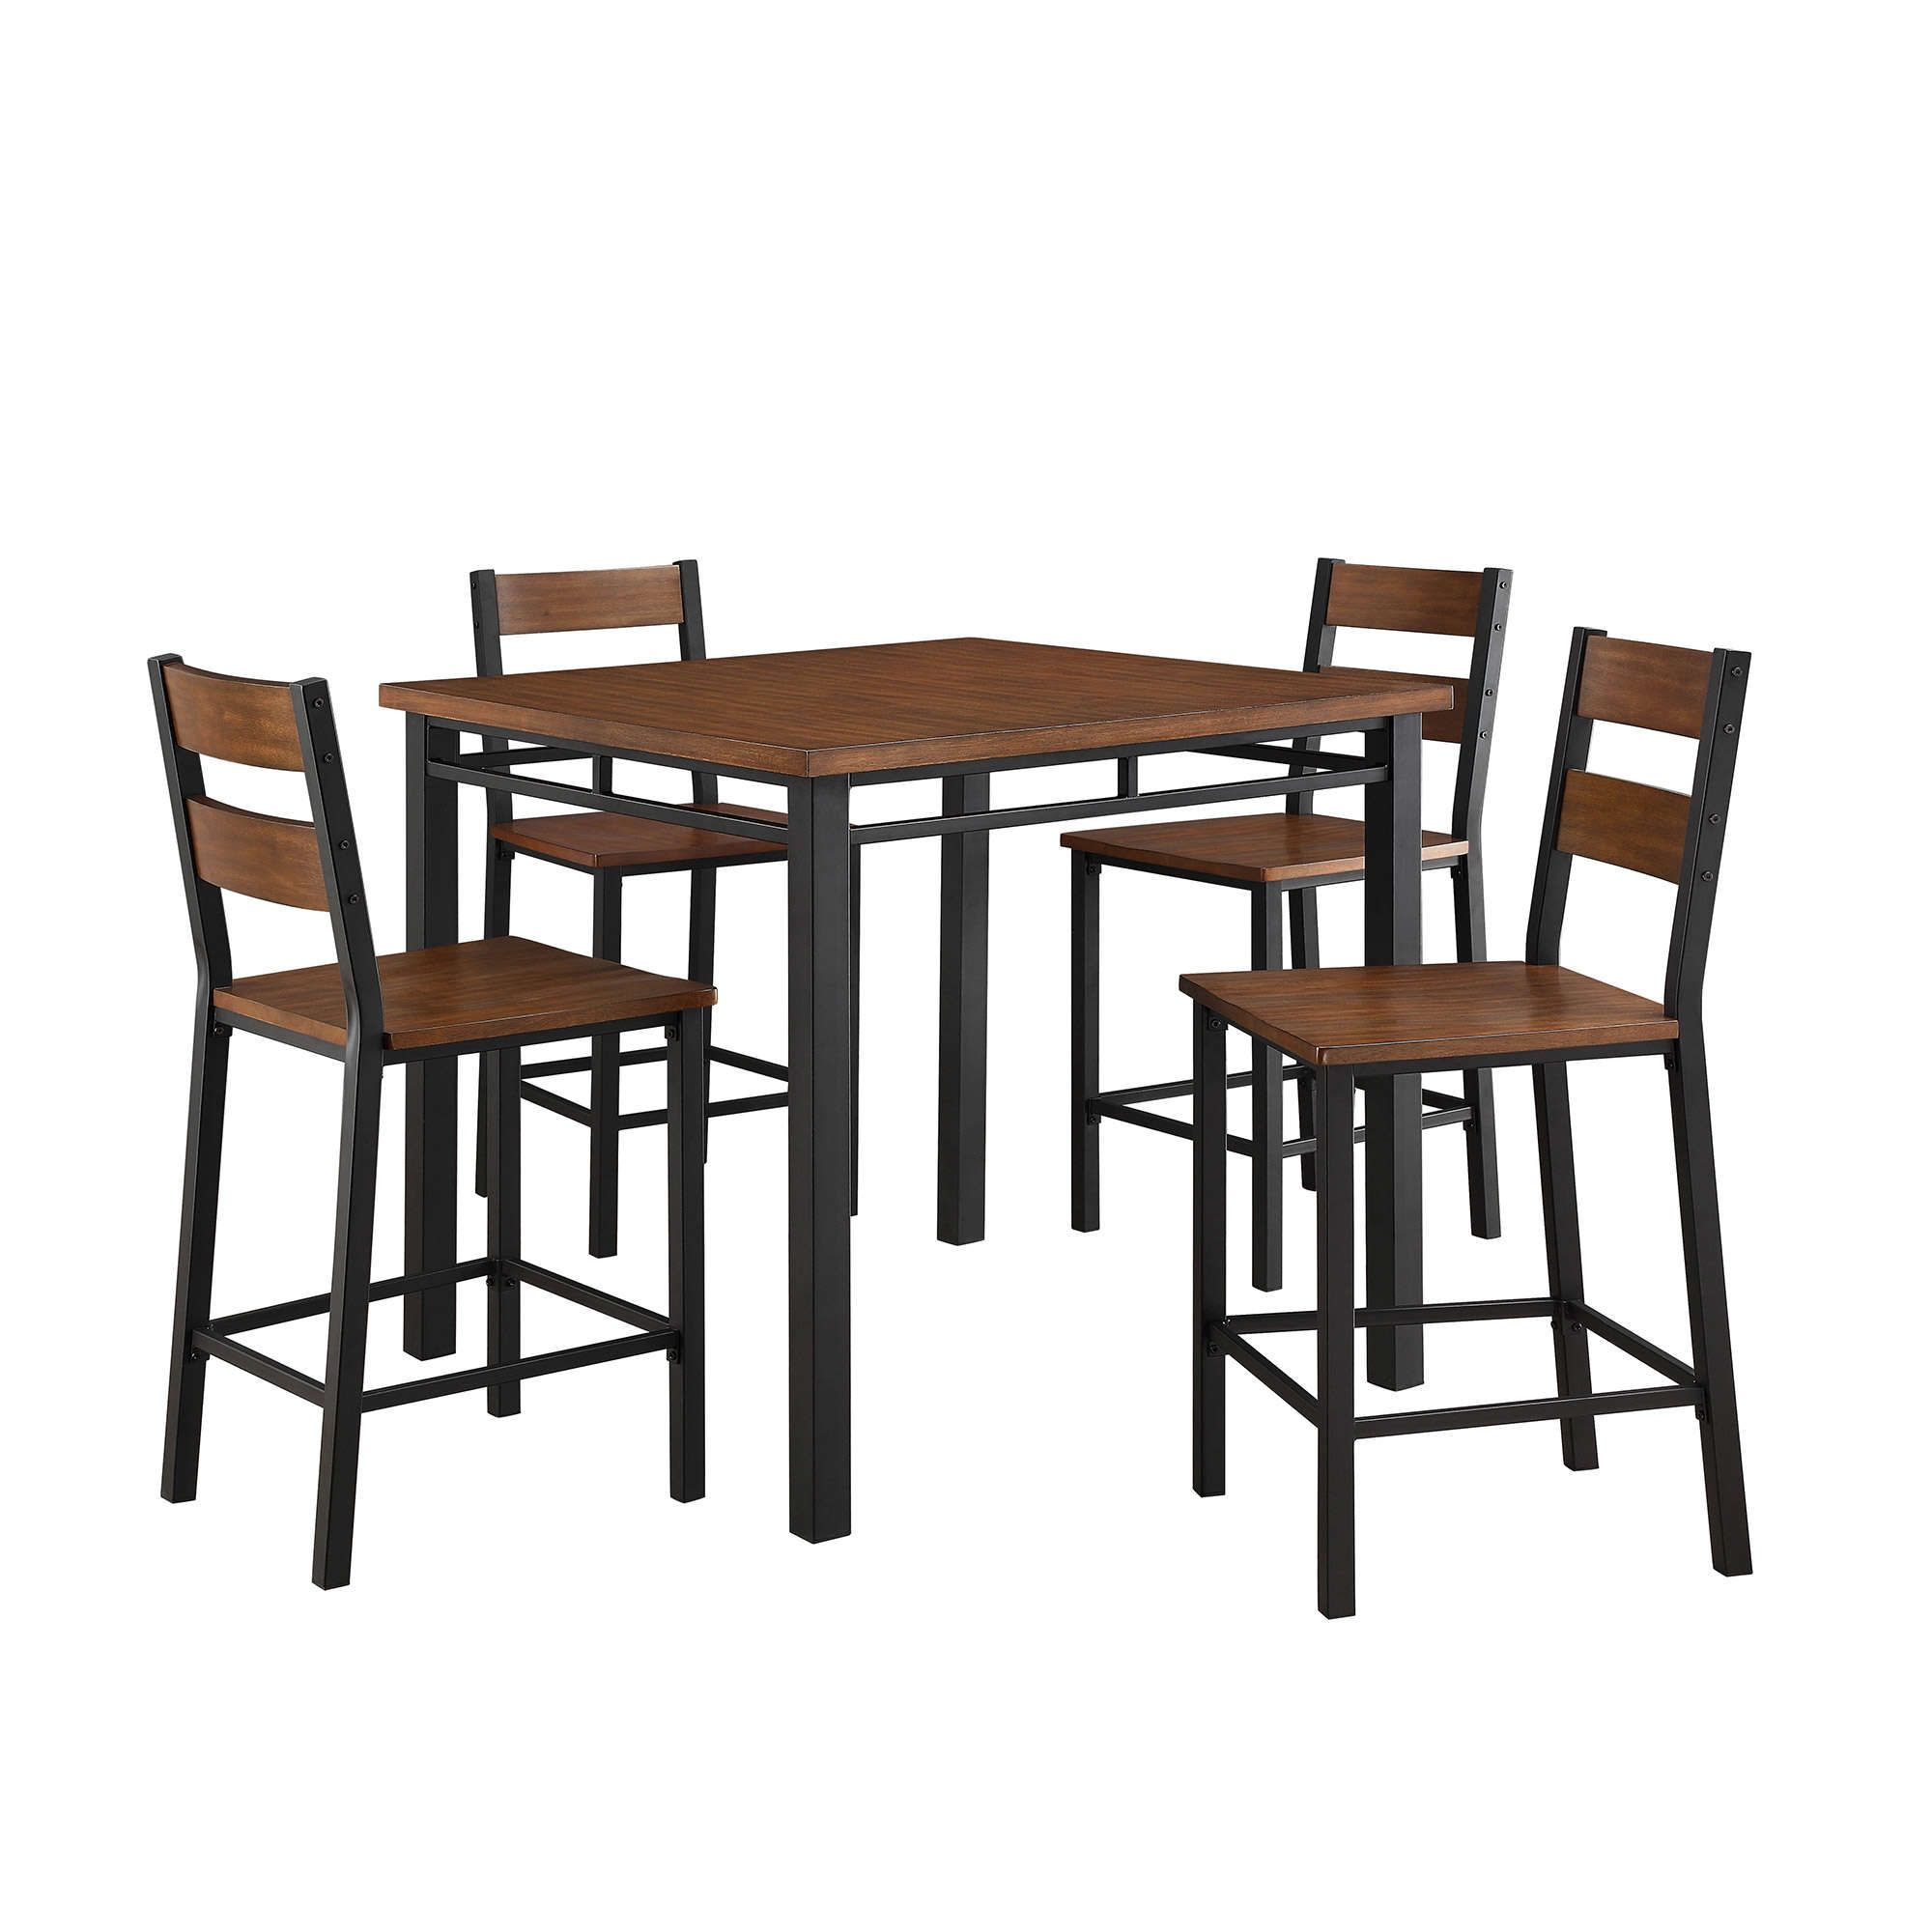 1d6805d7d929b1df07b853d8336653cd - Better Homes And Gardens Mercer Dining Chair Set Of 2